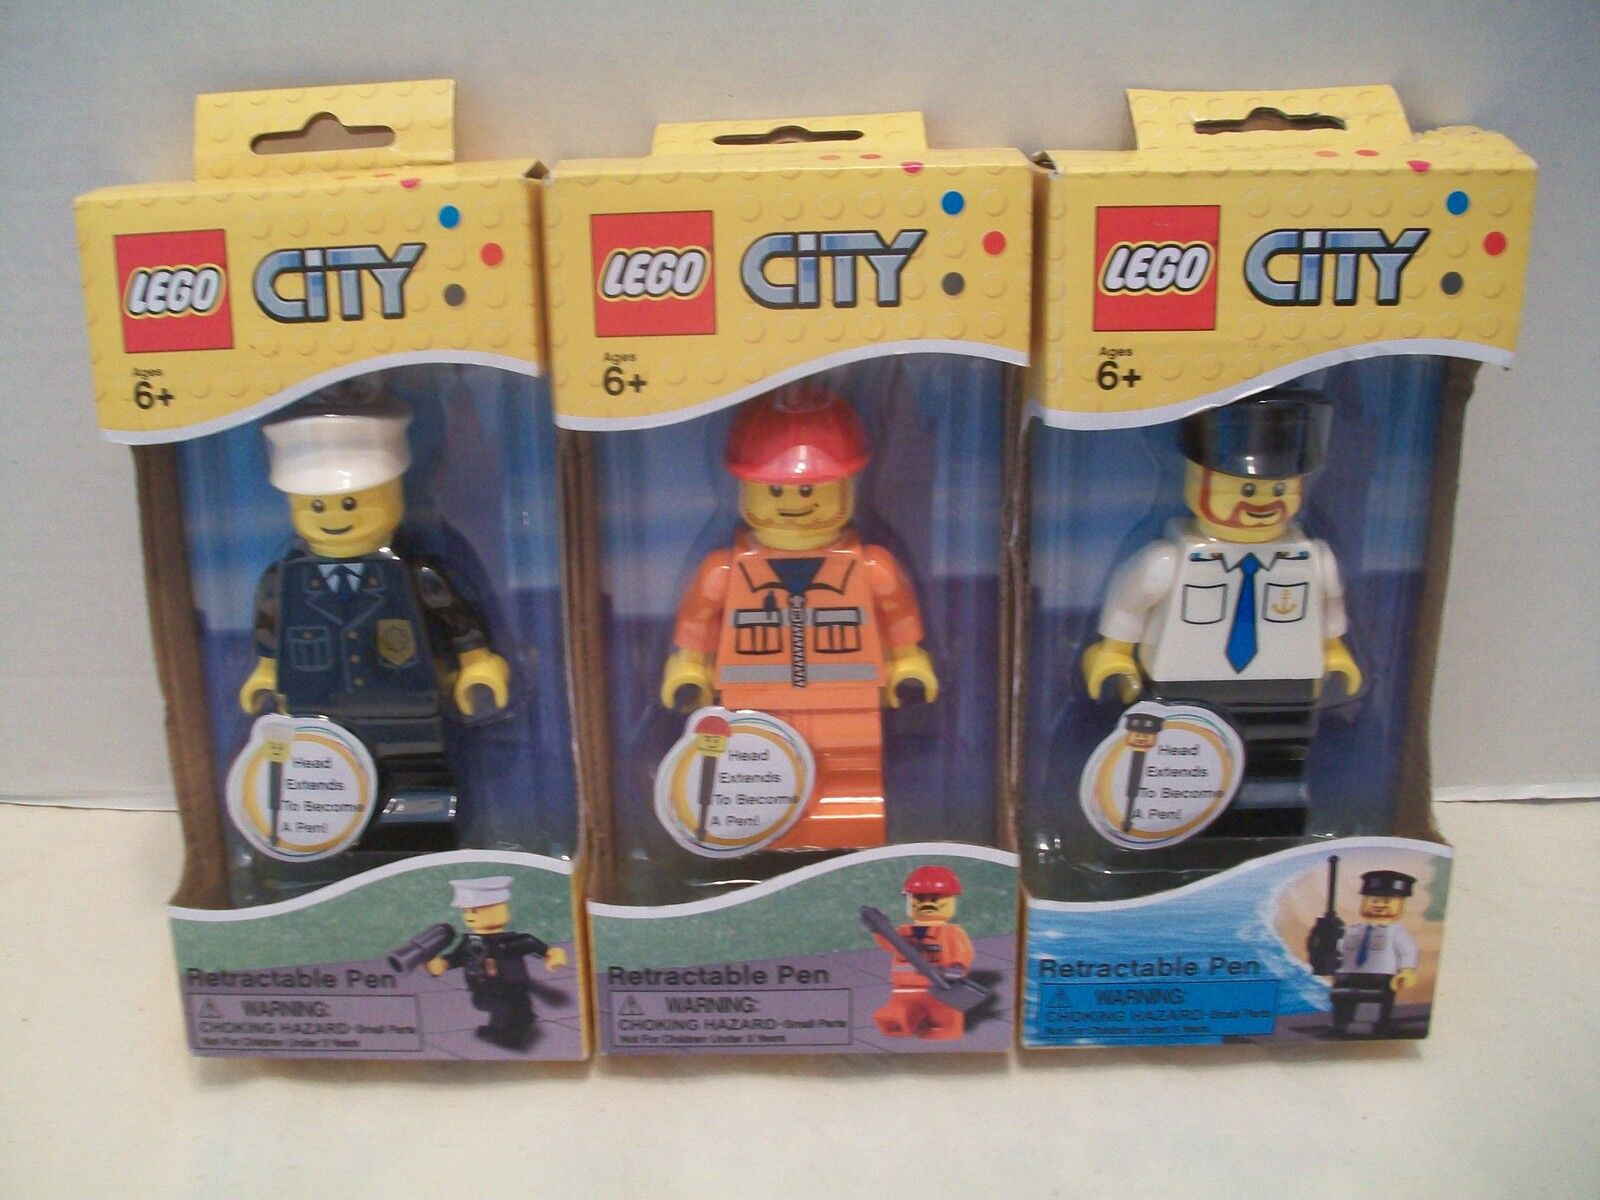 Lego  LGO2221- LGO2222 And  LGO2223 City Retractable Pens Bundle NIB 2011